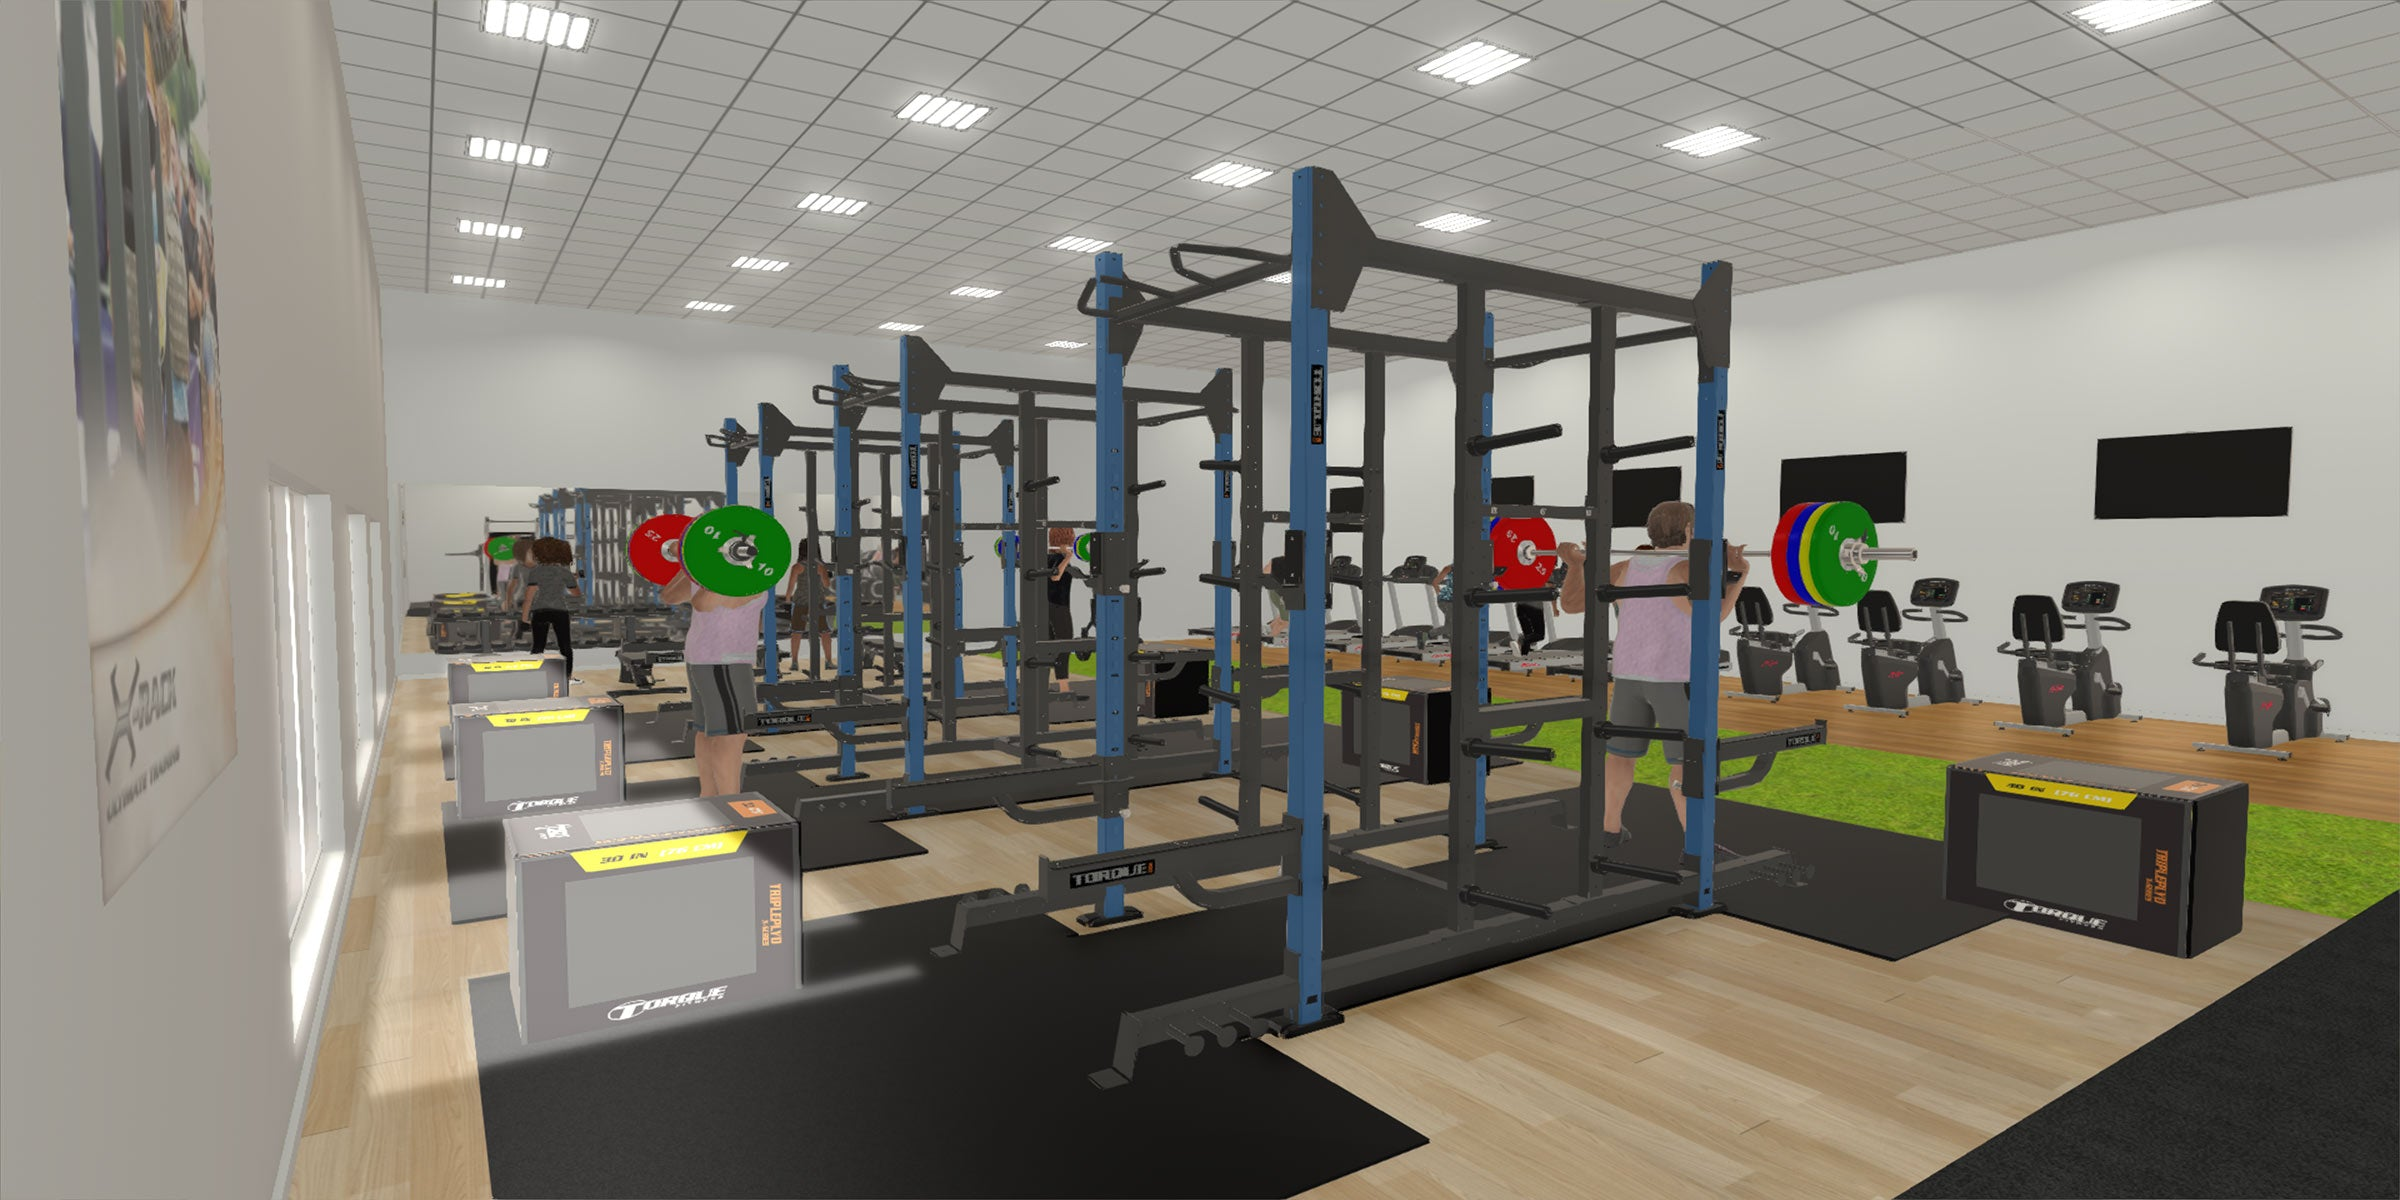 Exercise room ideas interior home gym ideas fantastic most wicked